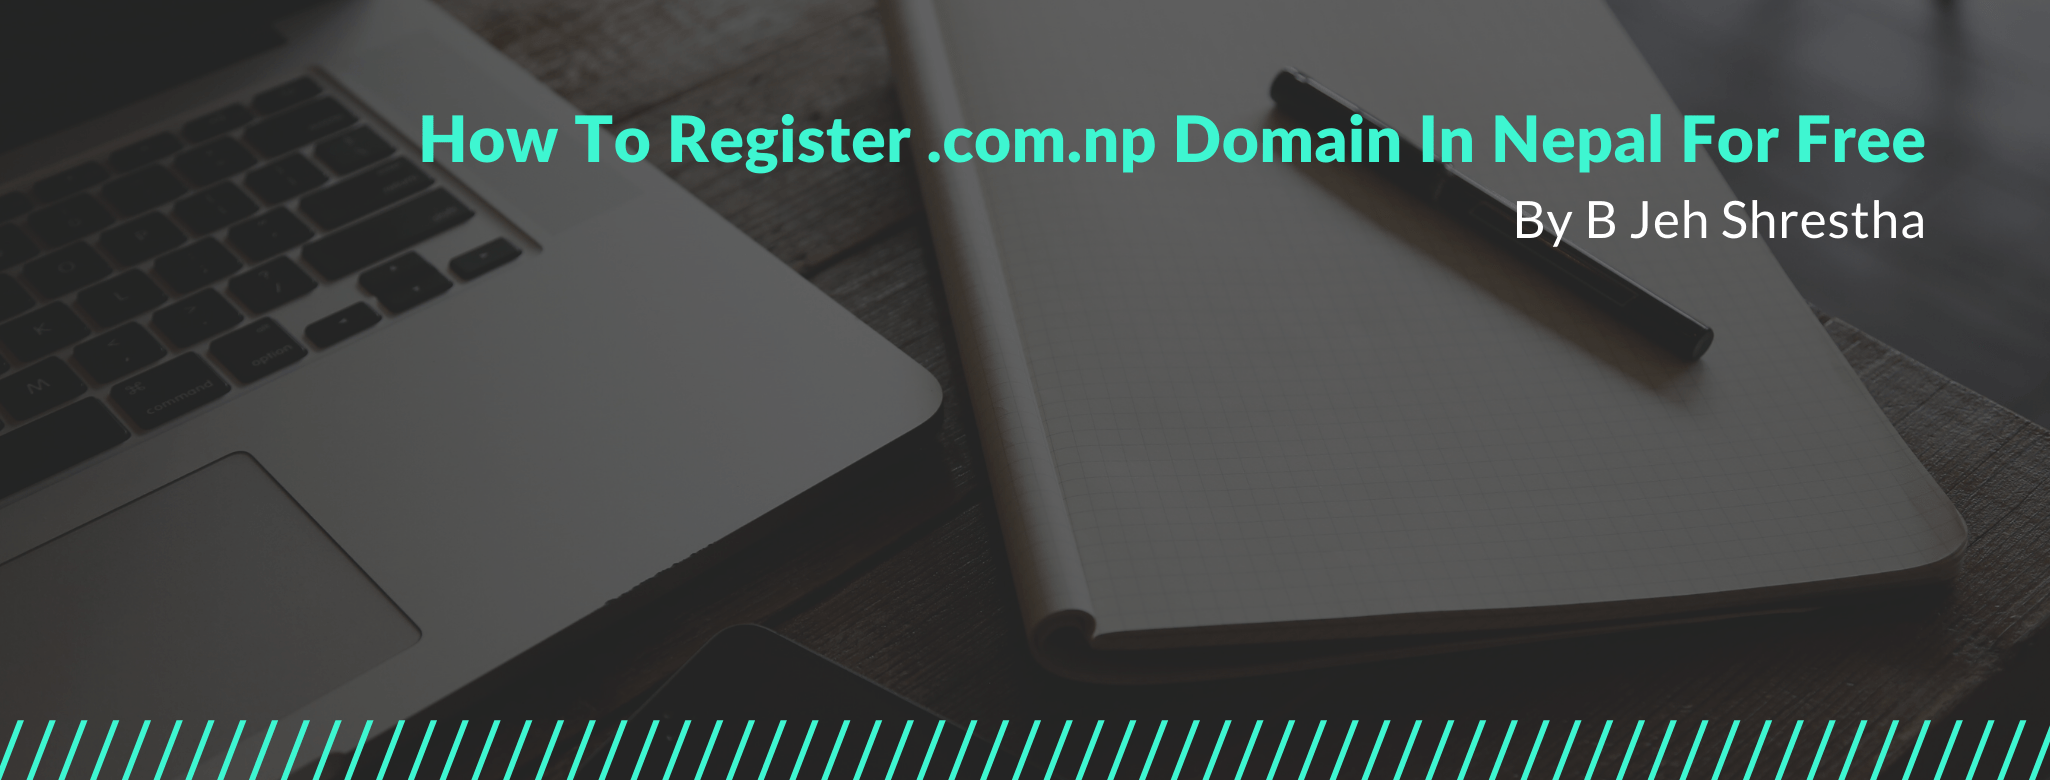 Register .com.np Domain In Nepal For Free